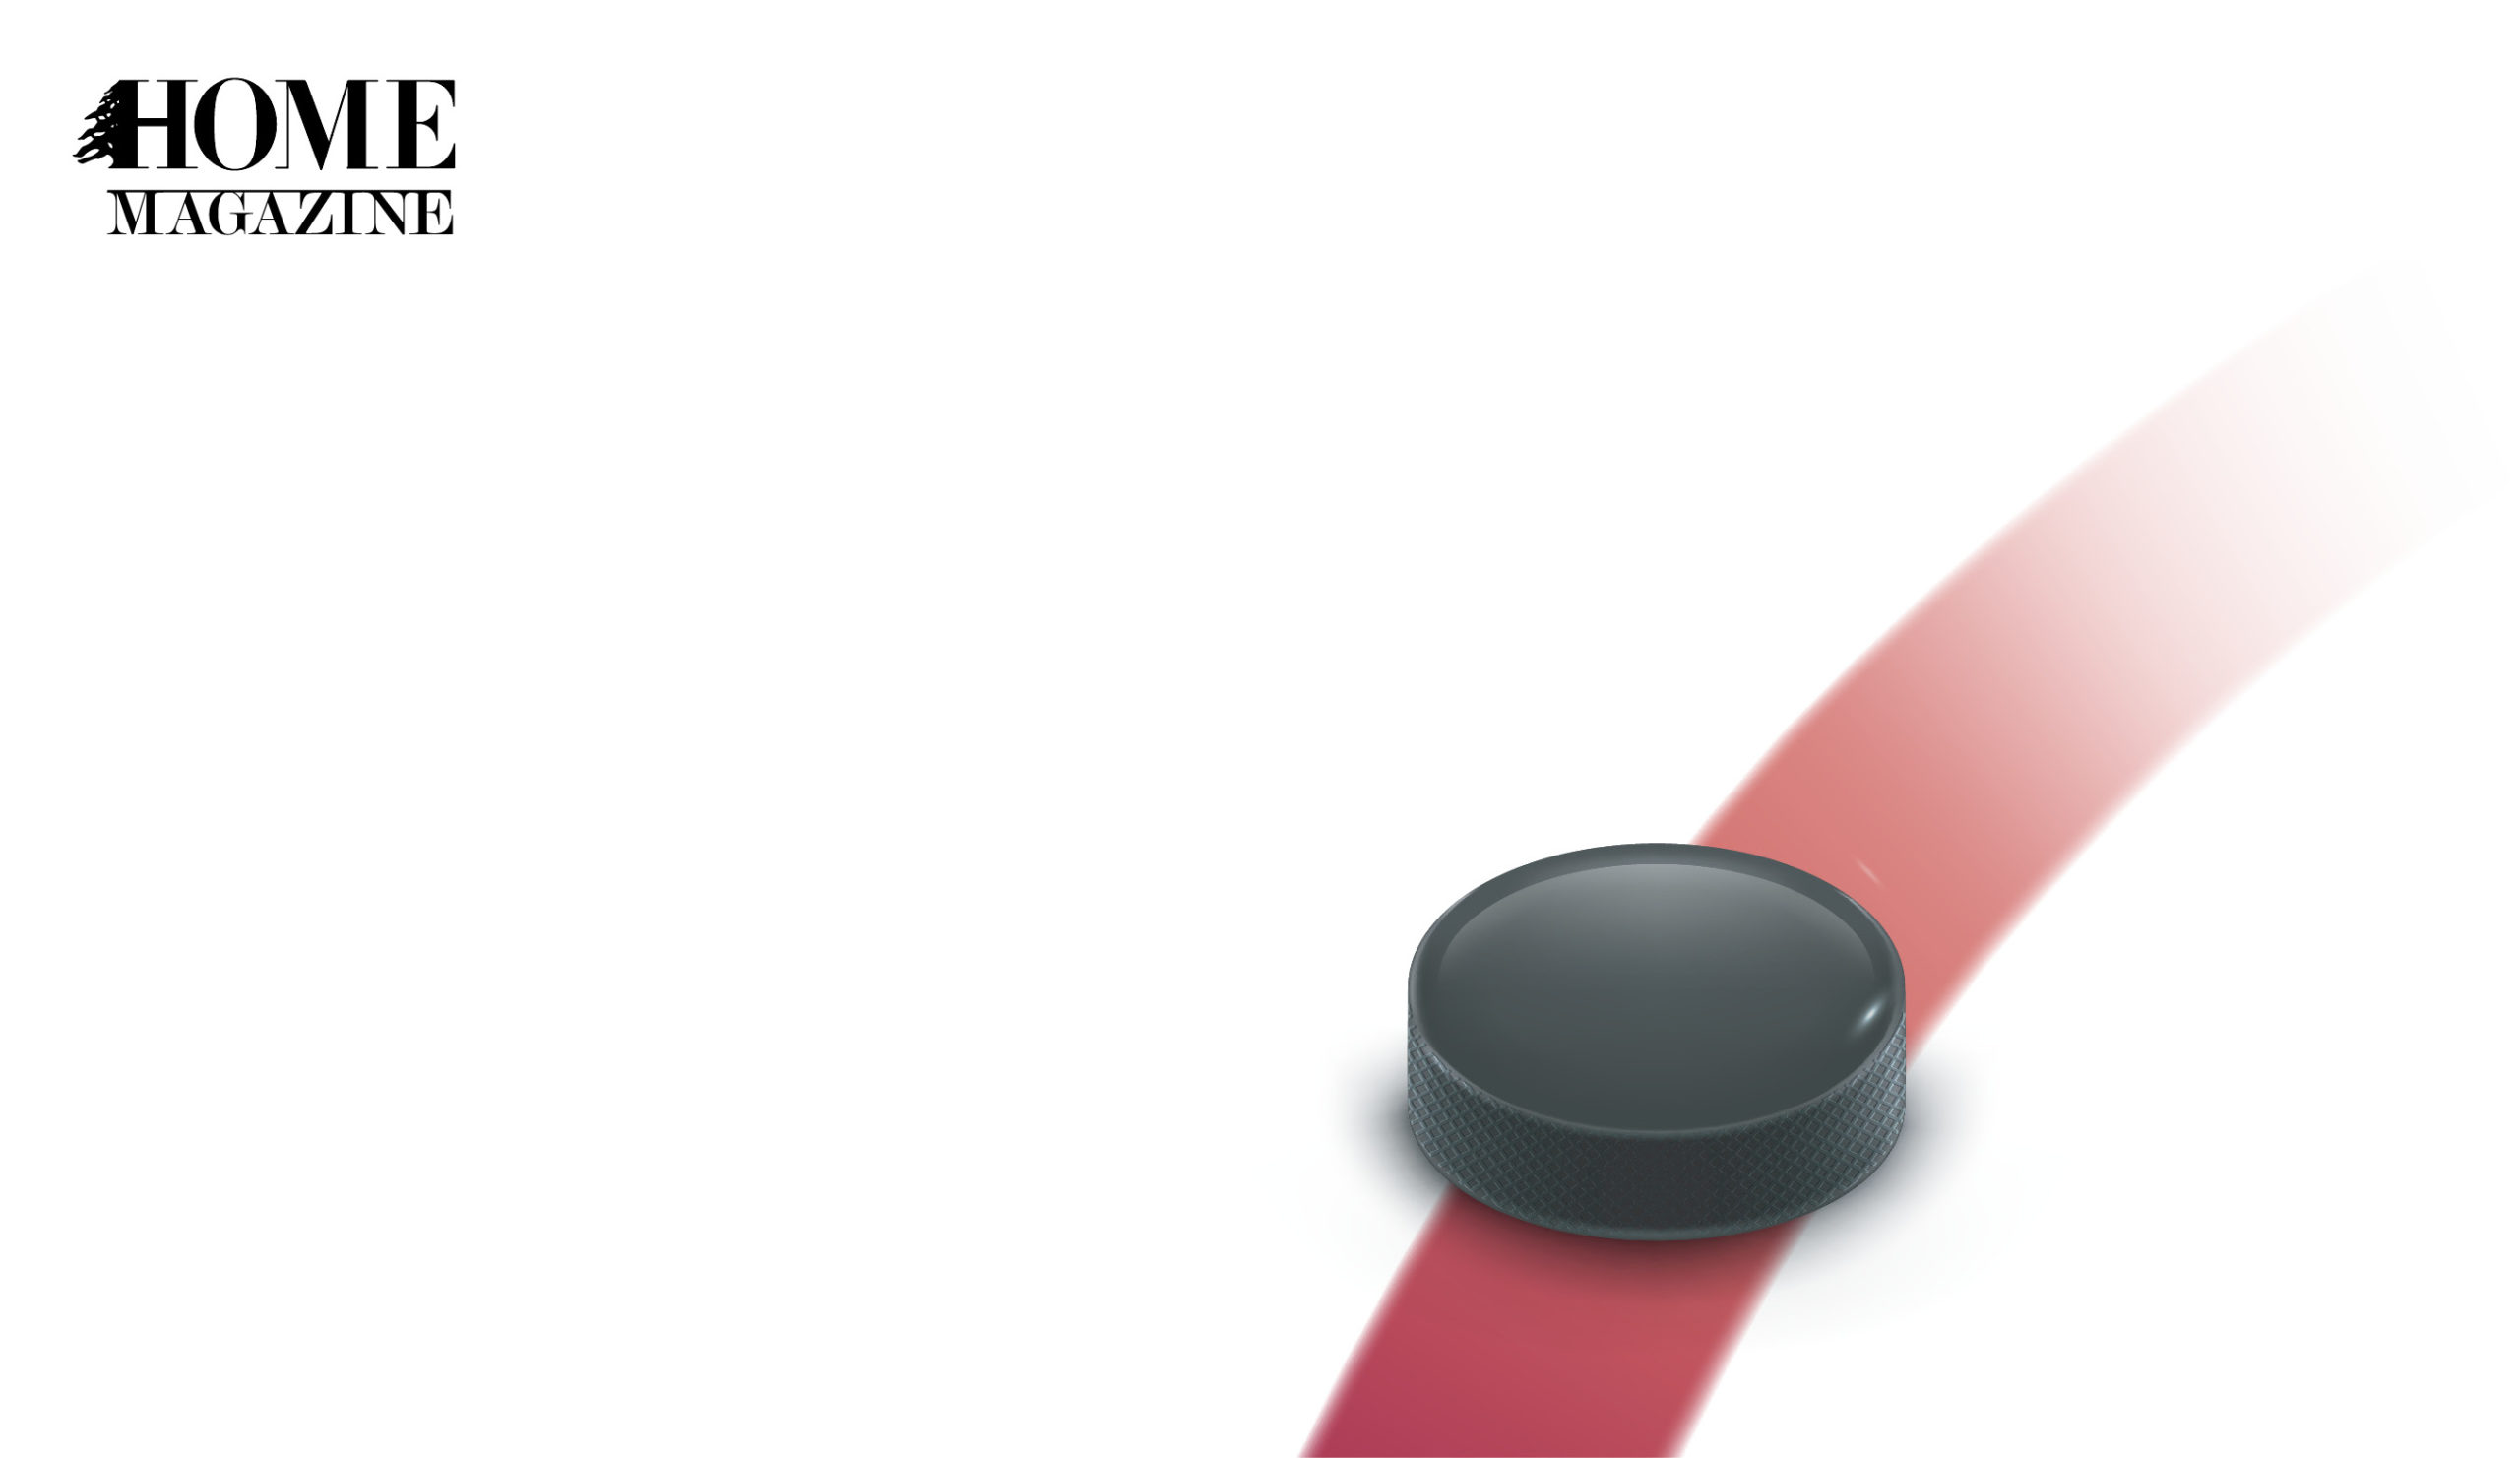 Illustration of black circled object on a red stripe